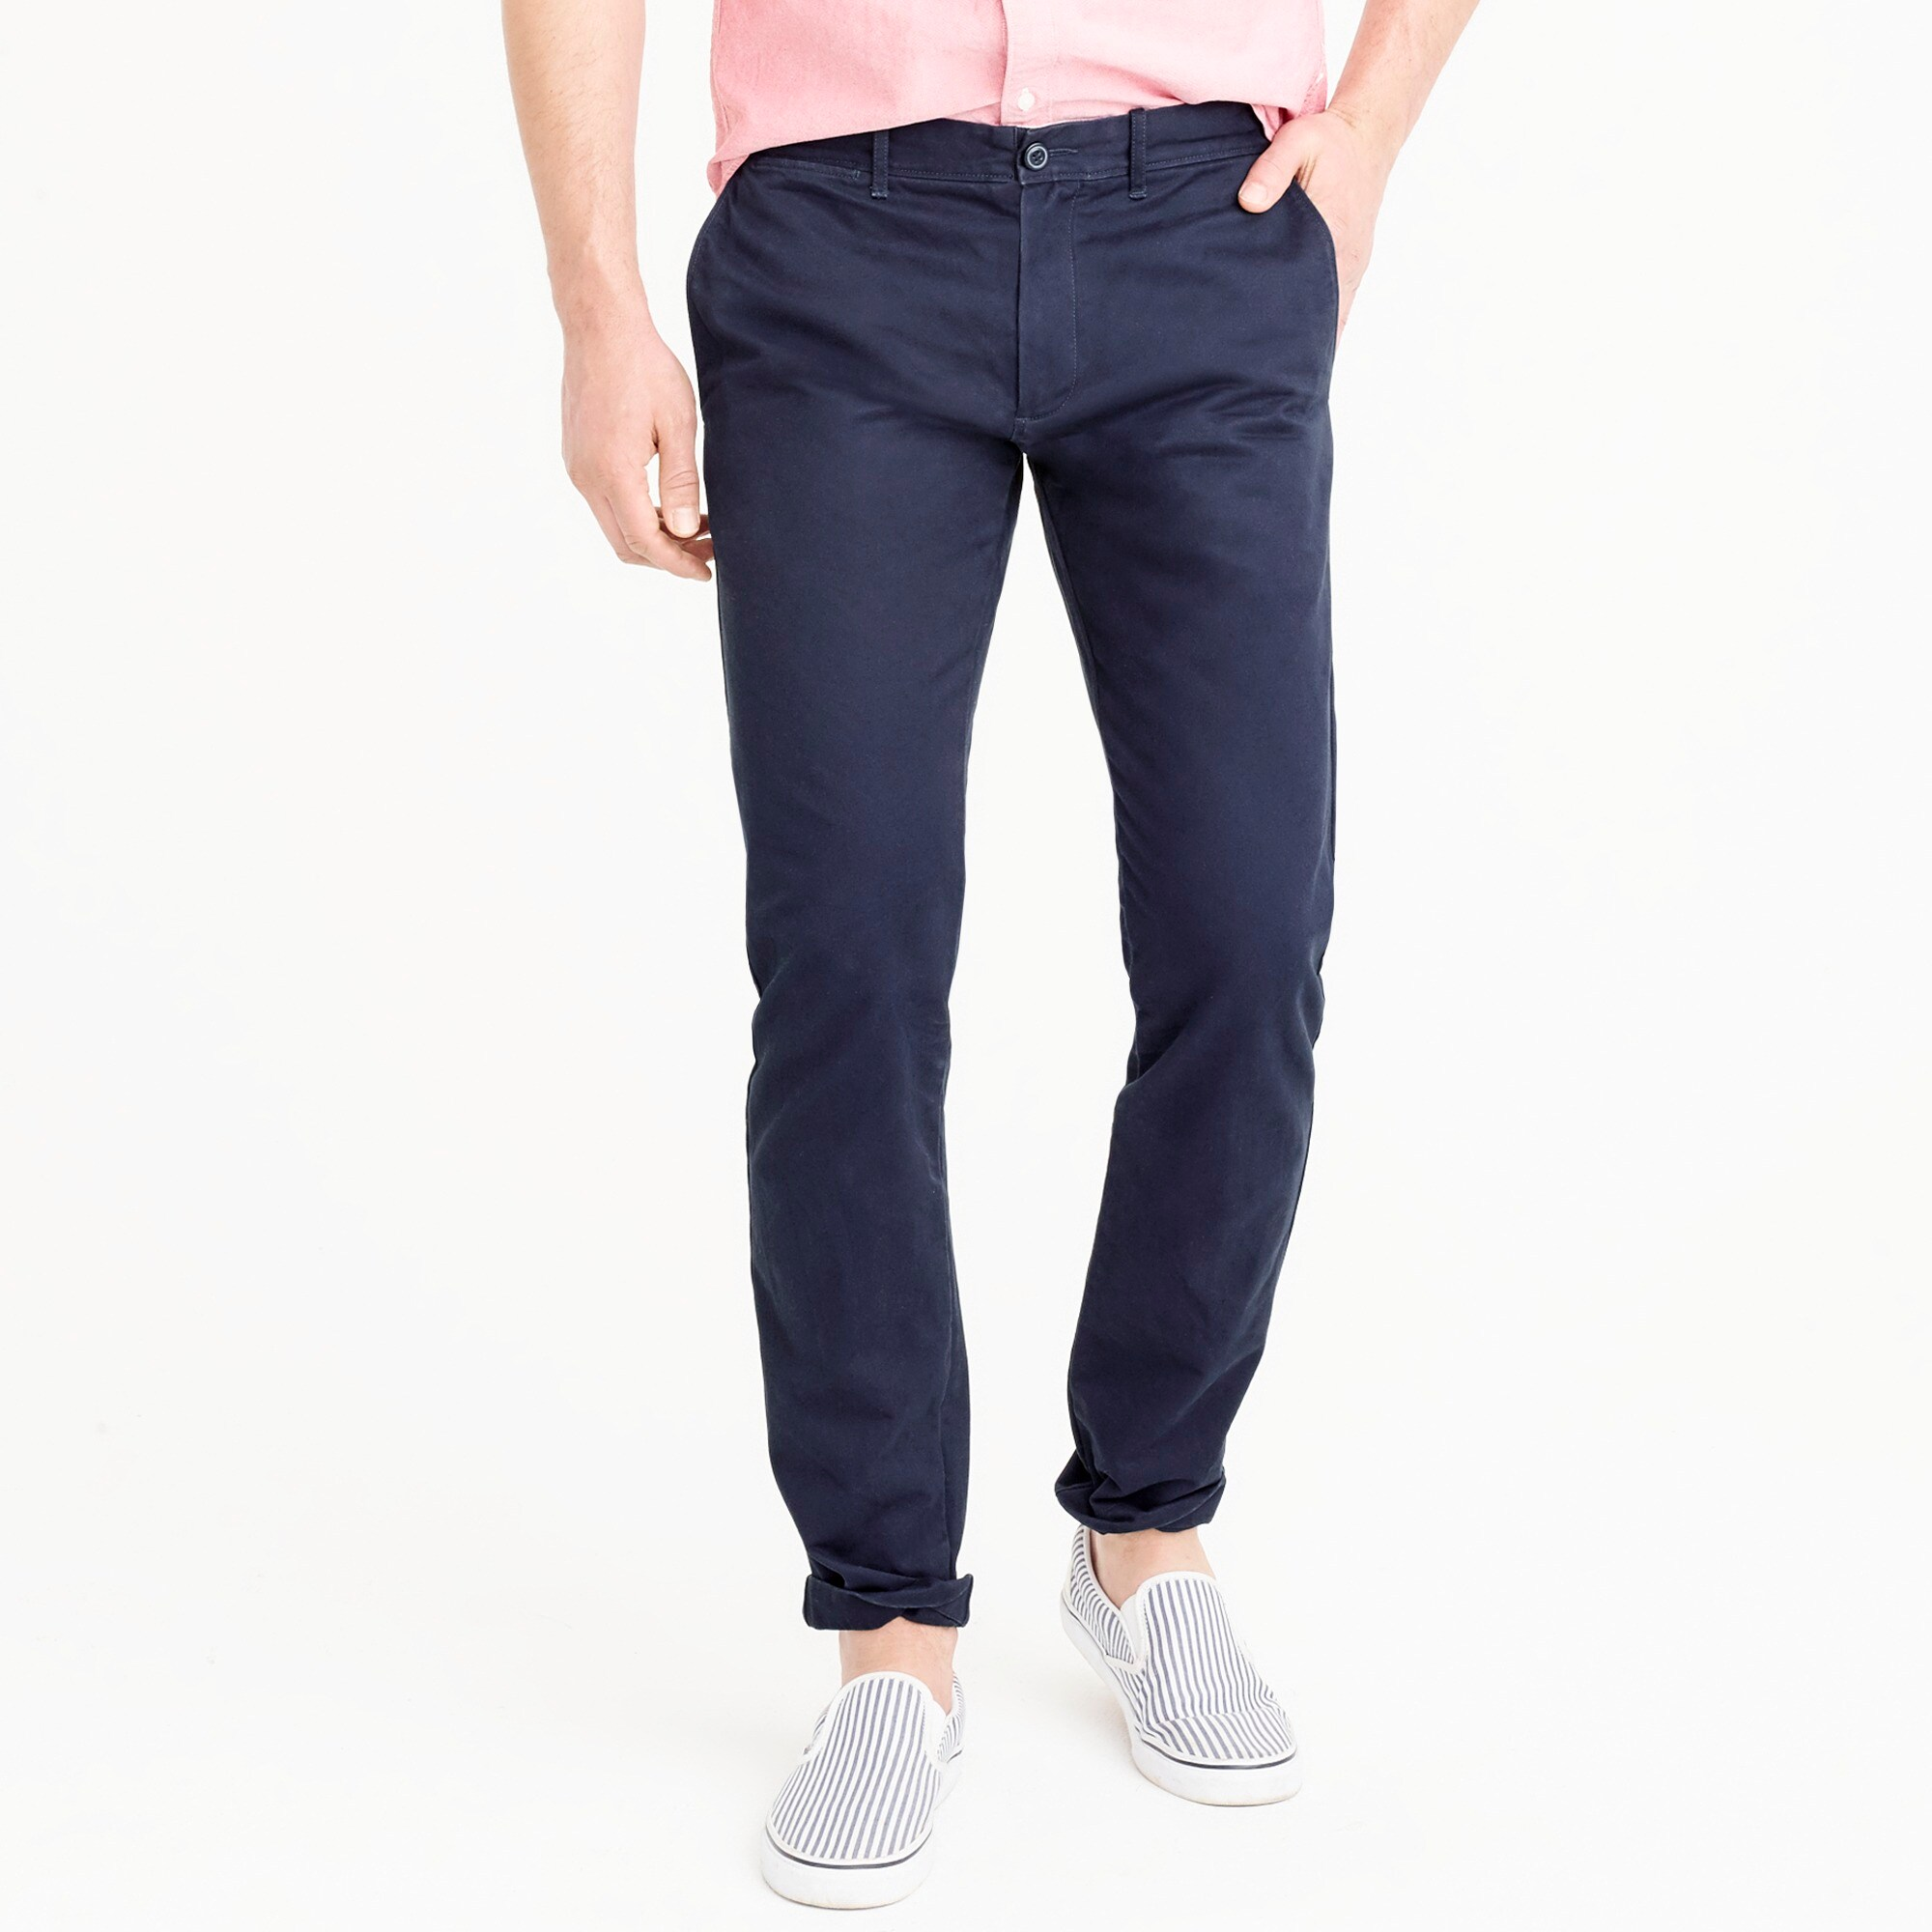 mens 484 Slim-fit pant in Broken-in chino